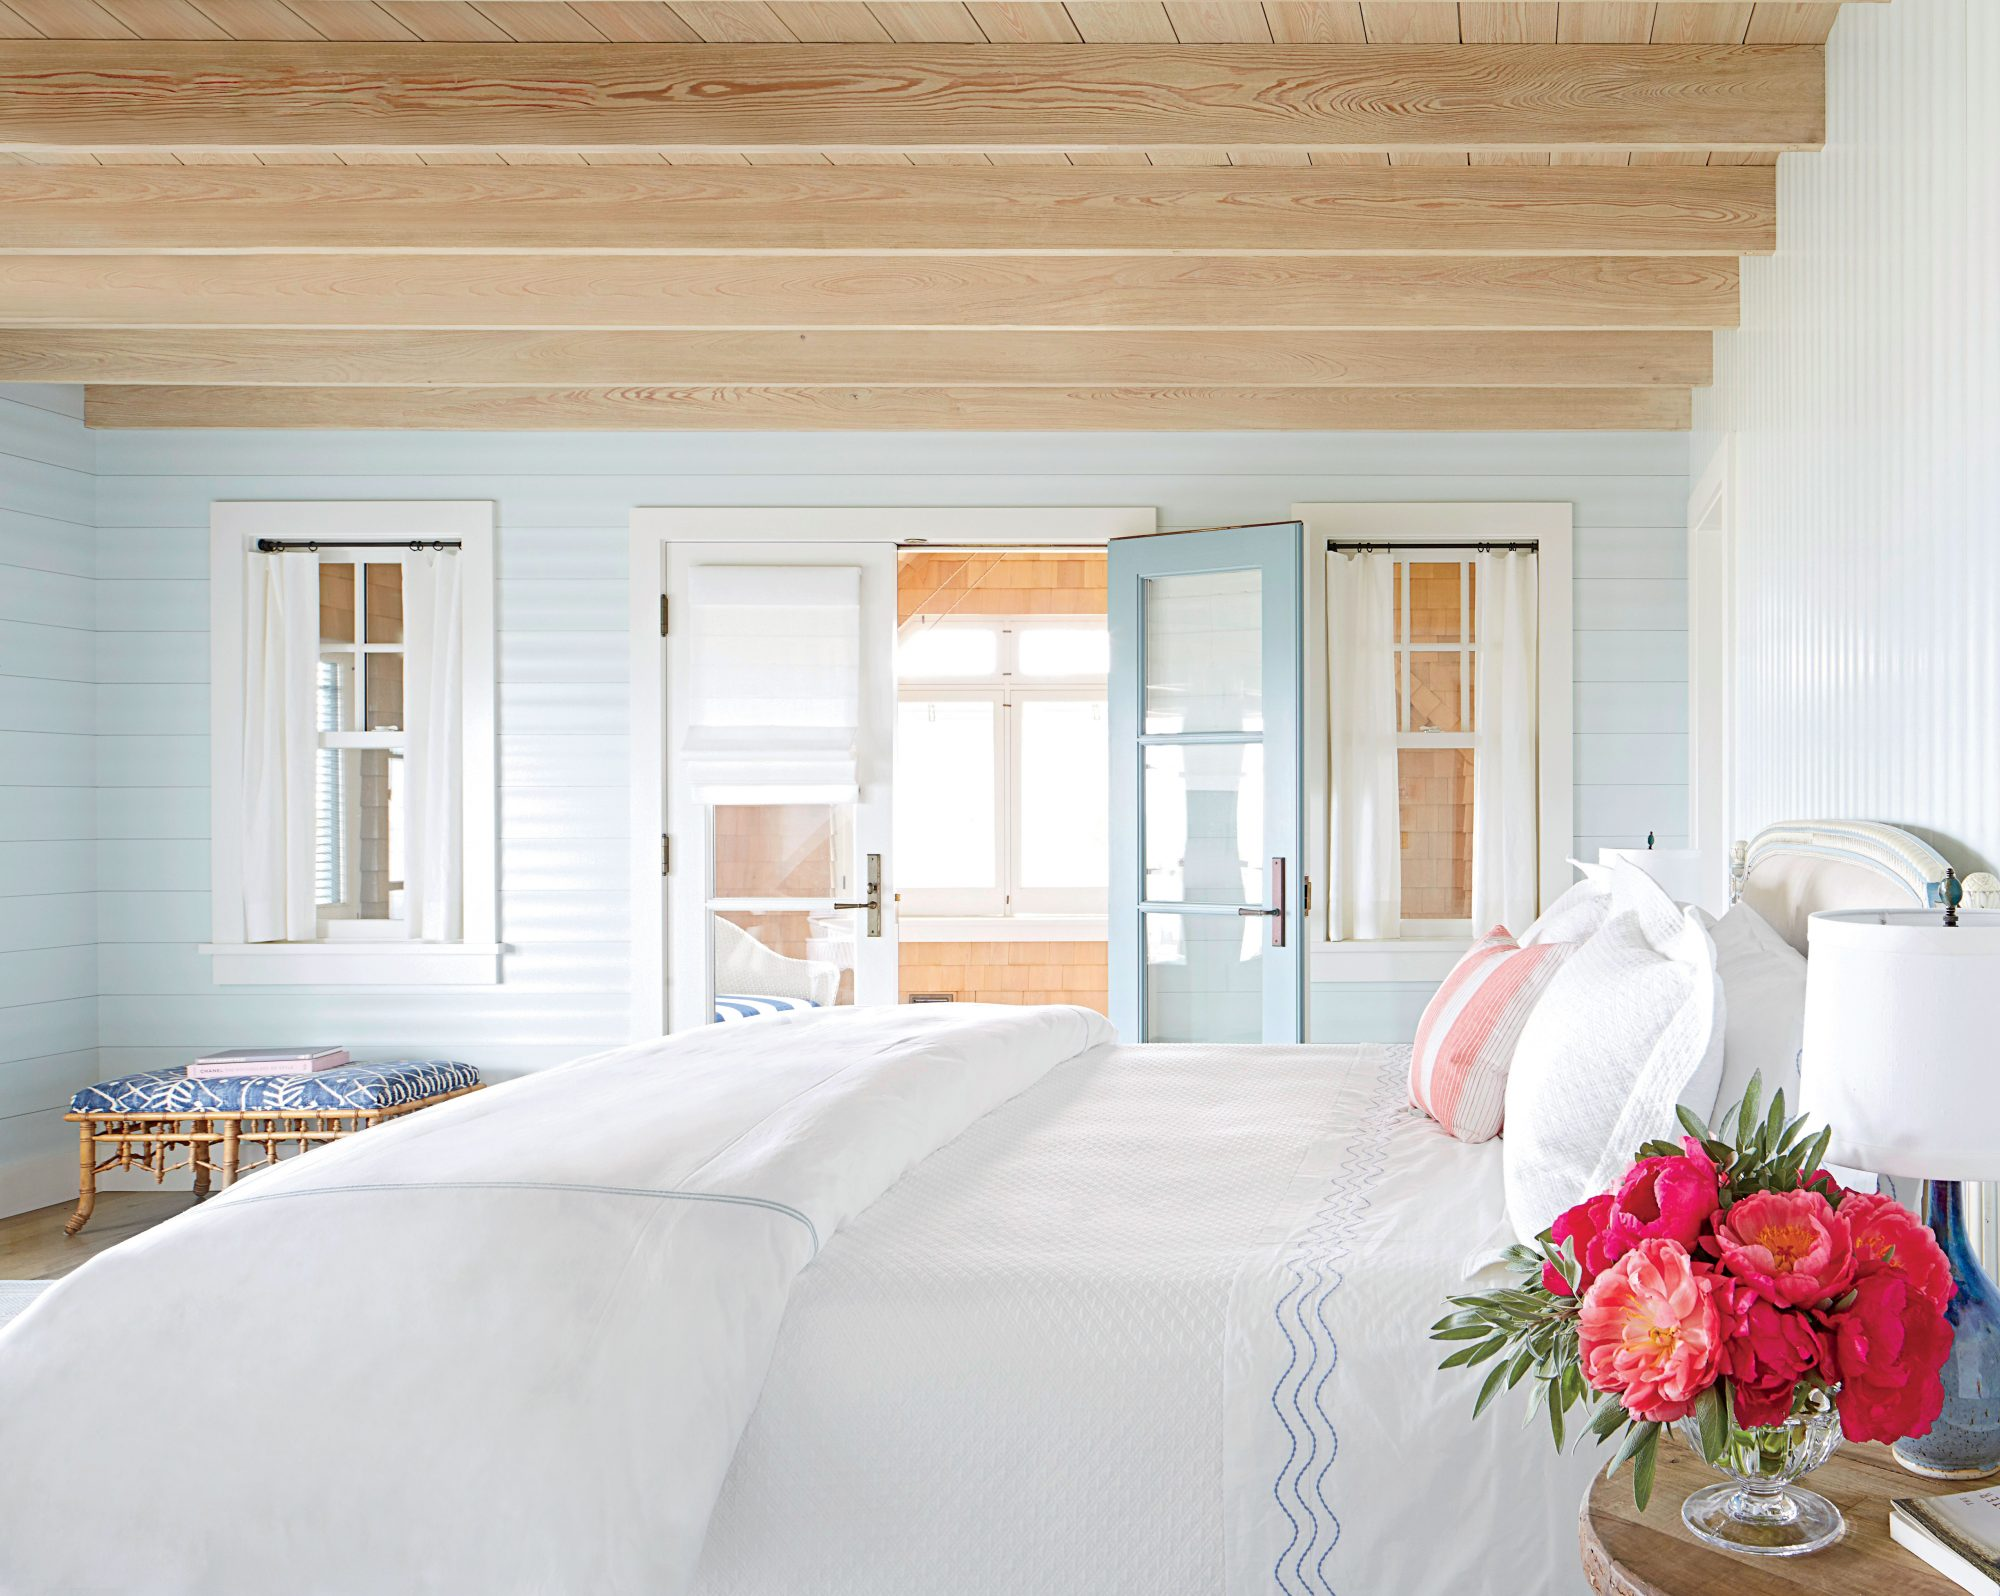 Cypress ceilings and shiplap walls painted soft seafoam lend a breezy feel to this Jersey Shore bedroom.